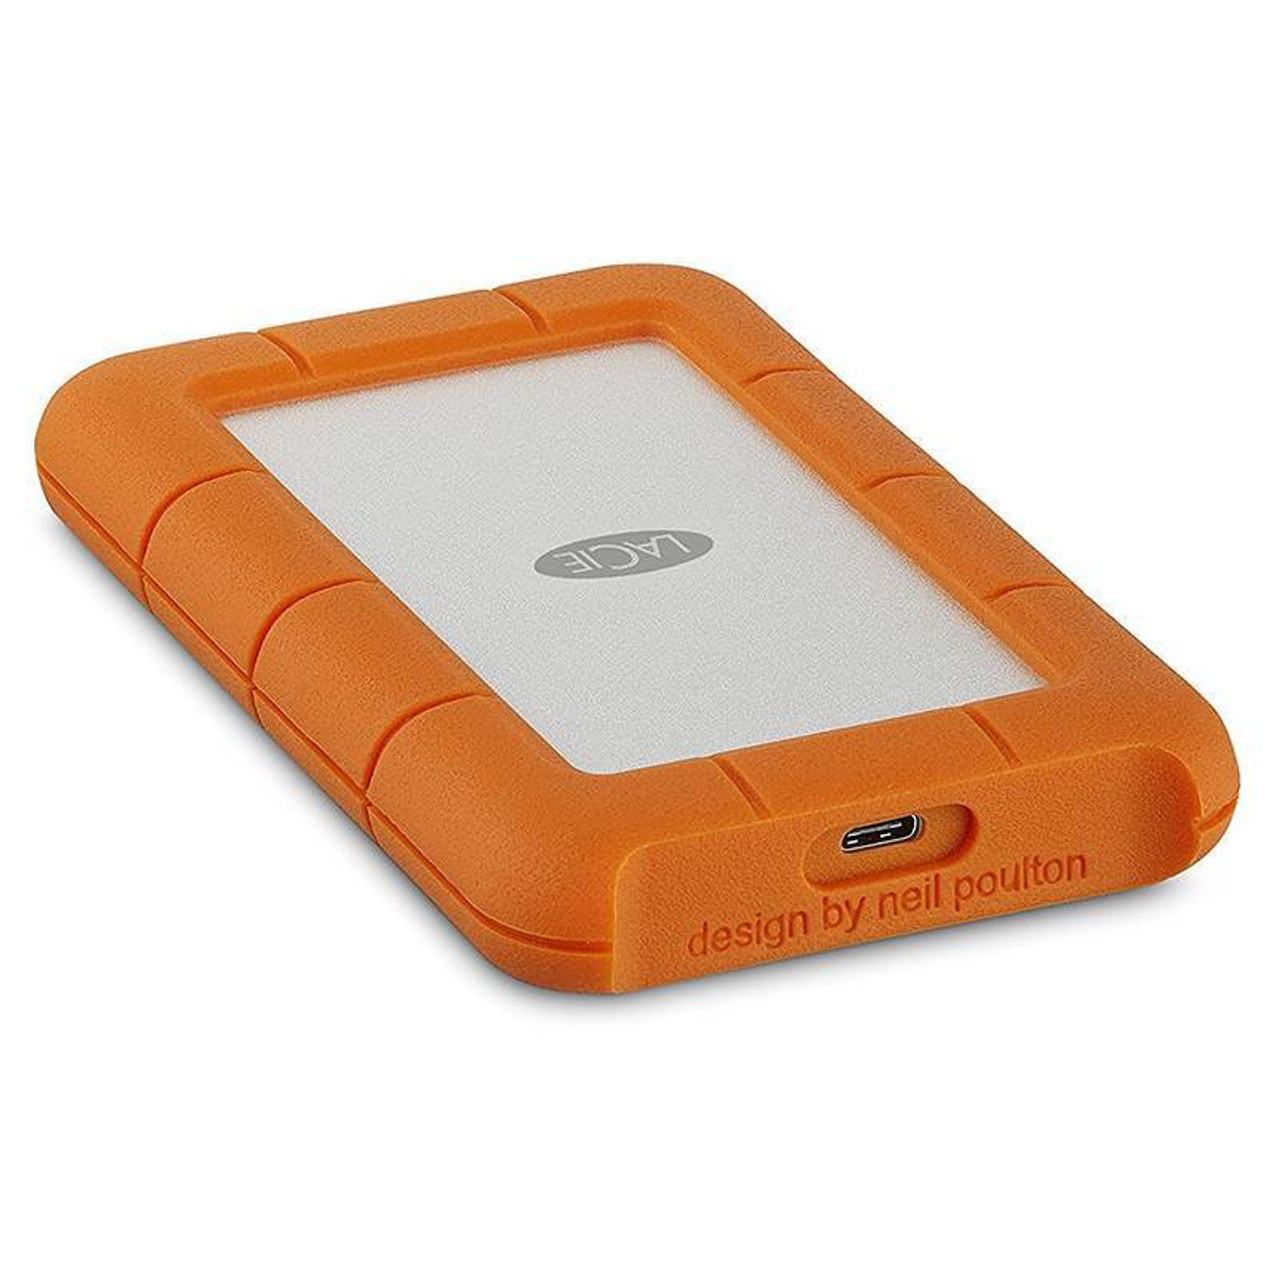 Product image for LaCie 4TB Rugged USB 3.1 Gen 1 Type-C External Portable Hard Drive   CX Computer Superstore